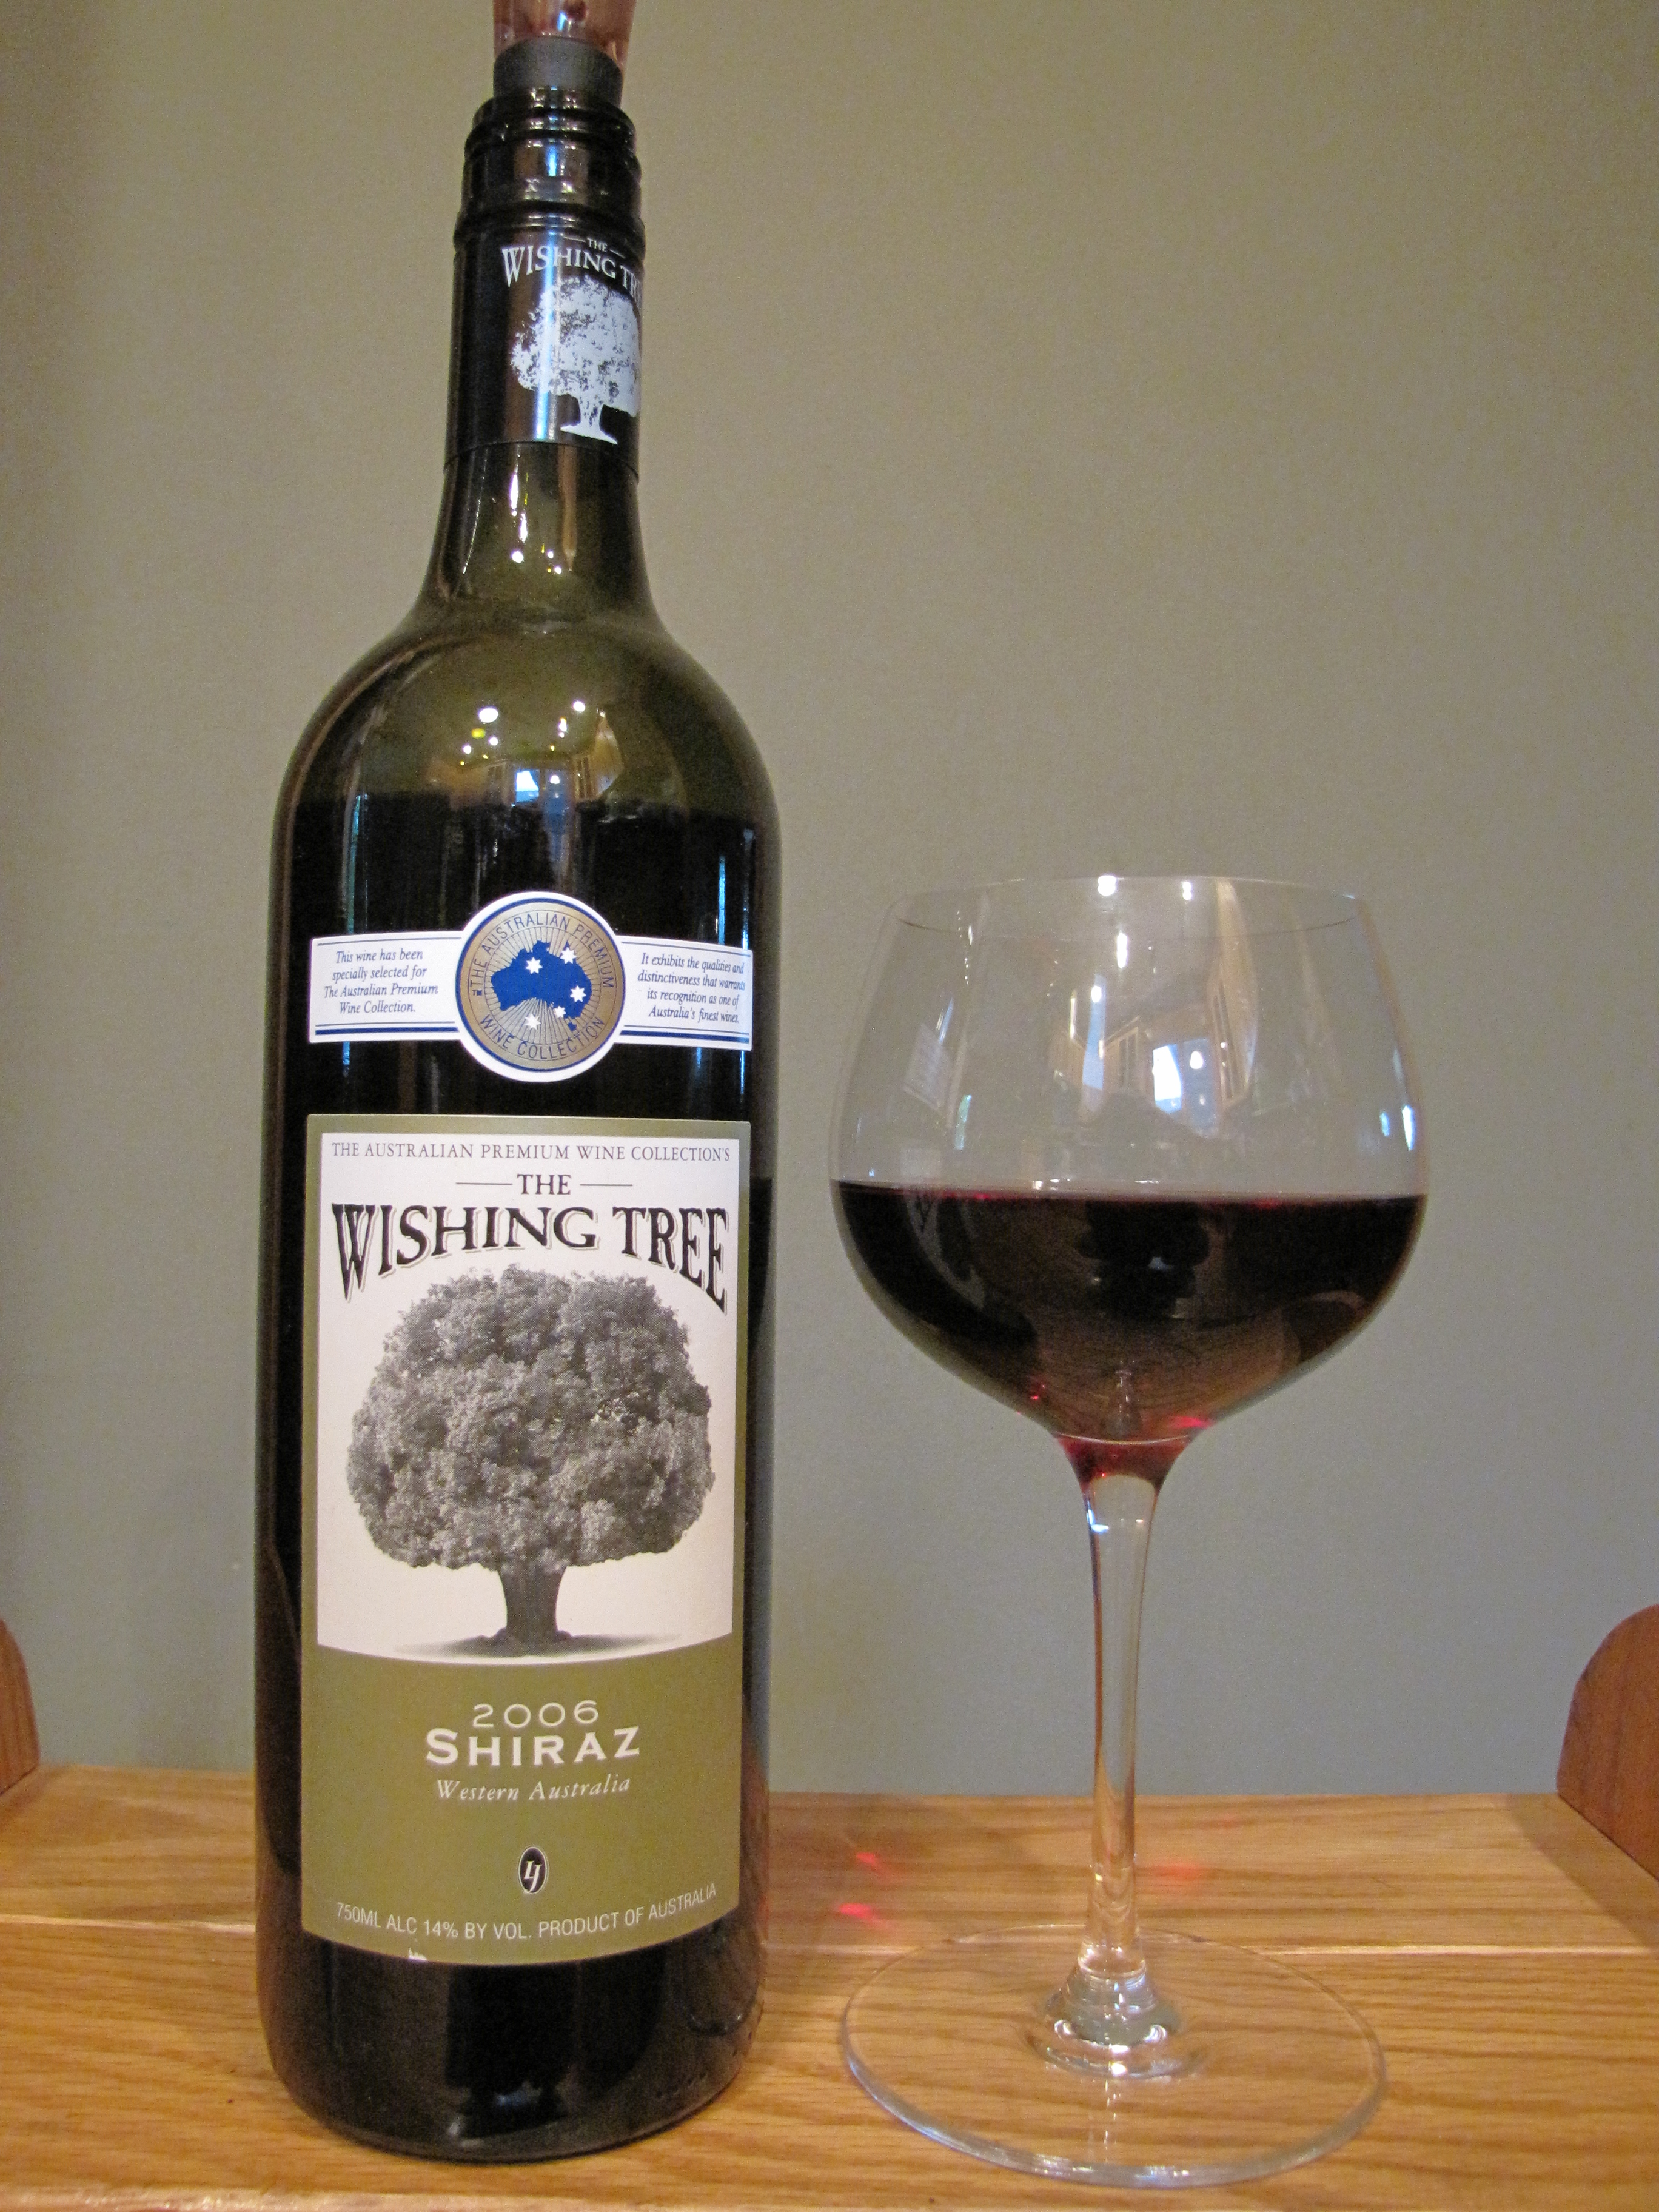 Wishing Tree Shiraz (2006)